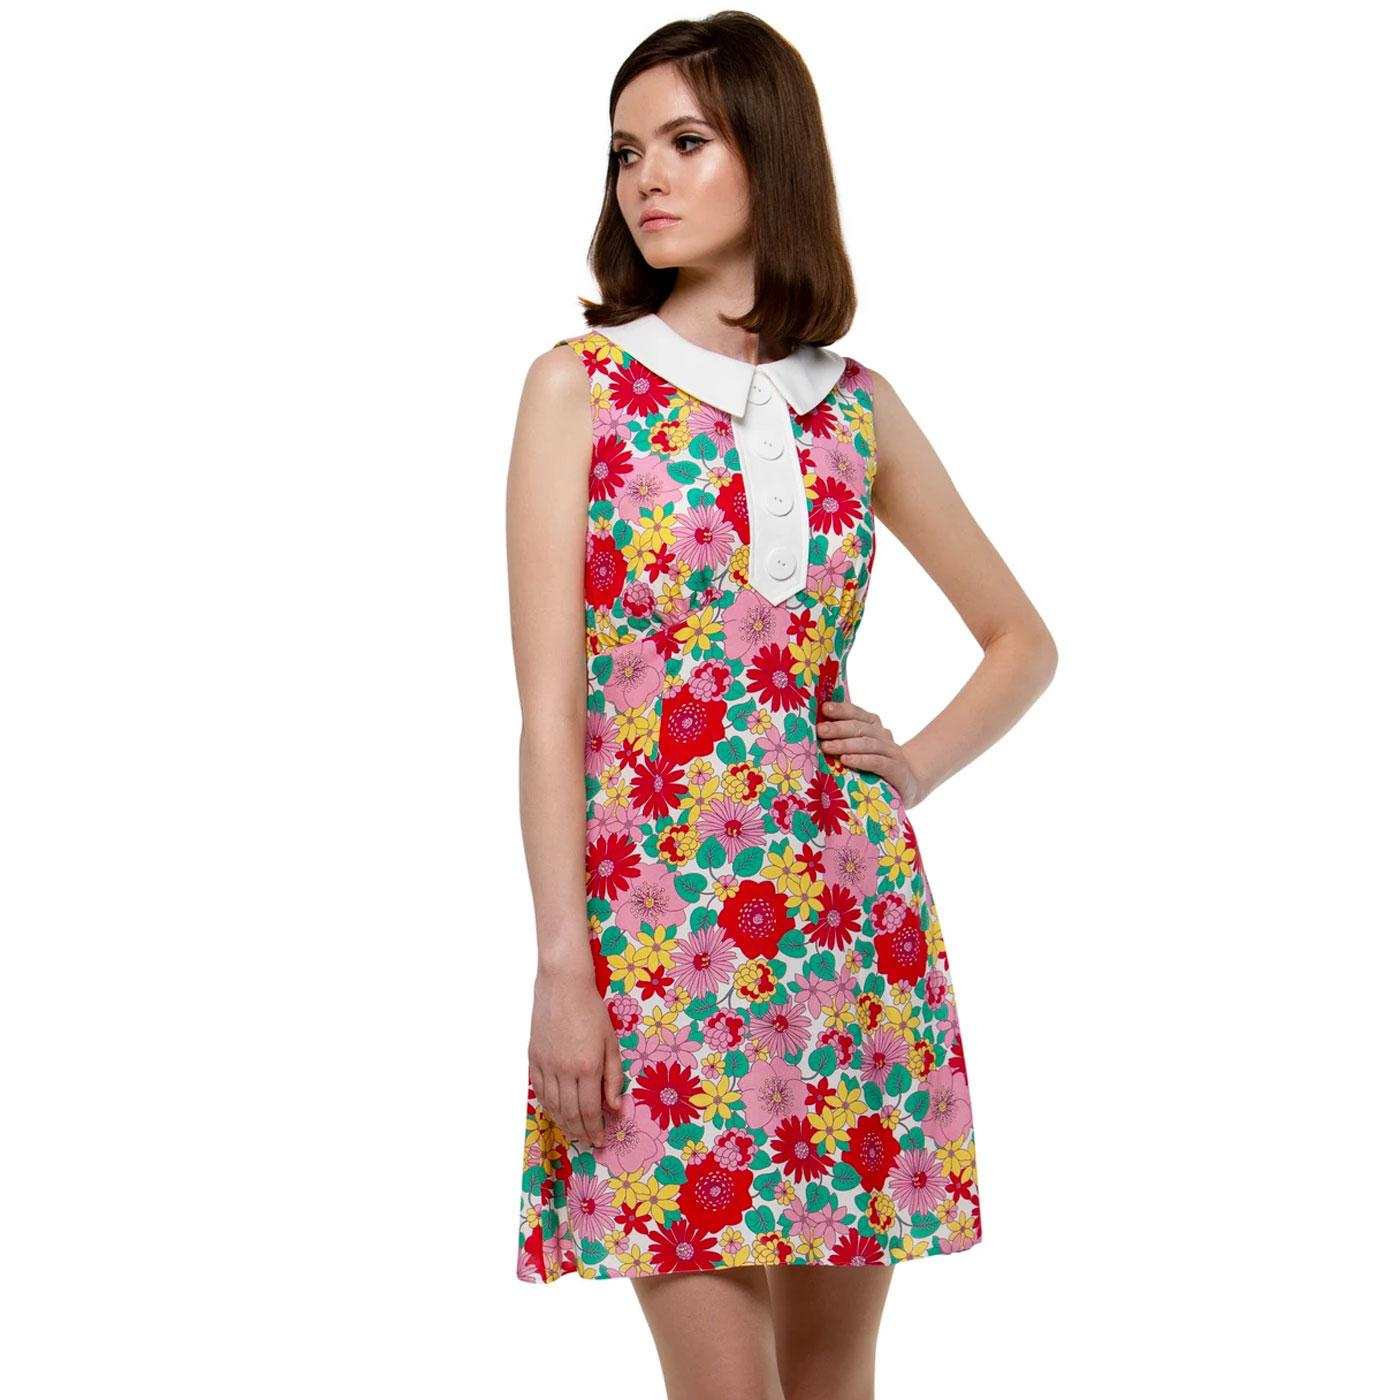 MARMALADE 60s Mod Floral Mini Dress With Collar